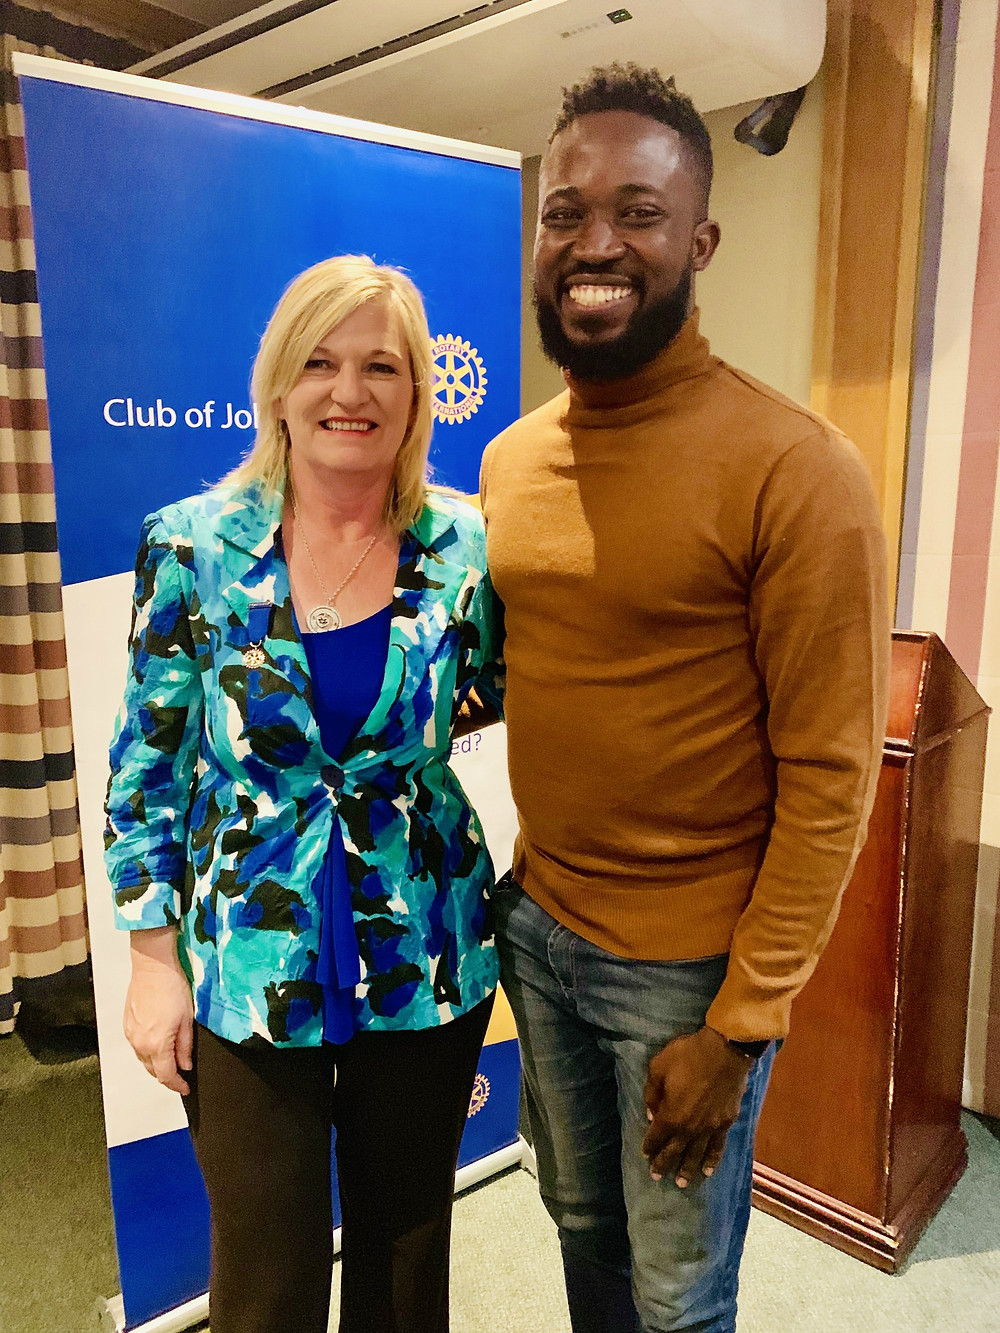 Emmanuel with Grace Van Zyl, president of the Rotary Club of Johannesburg